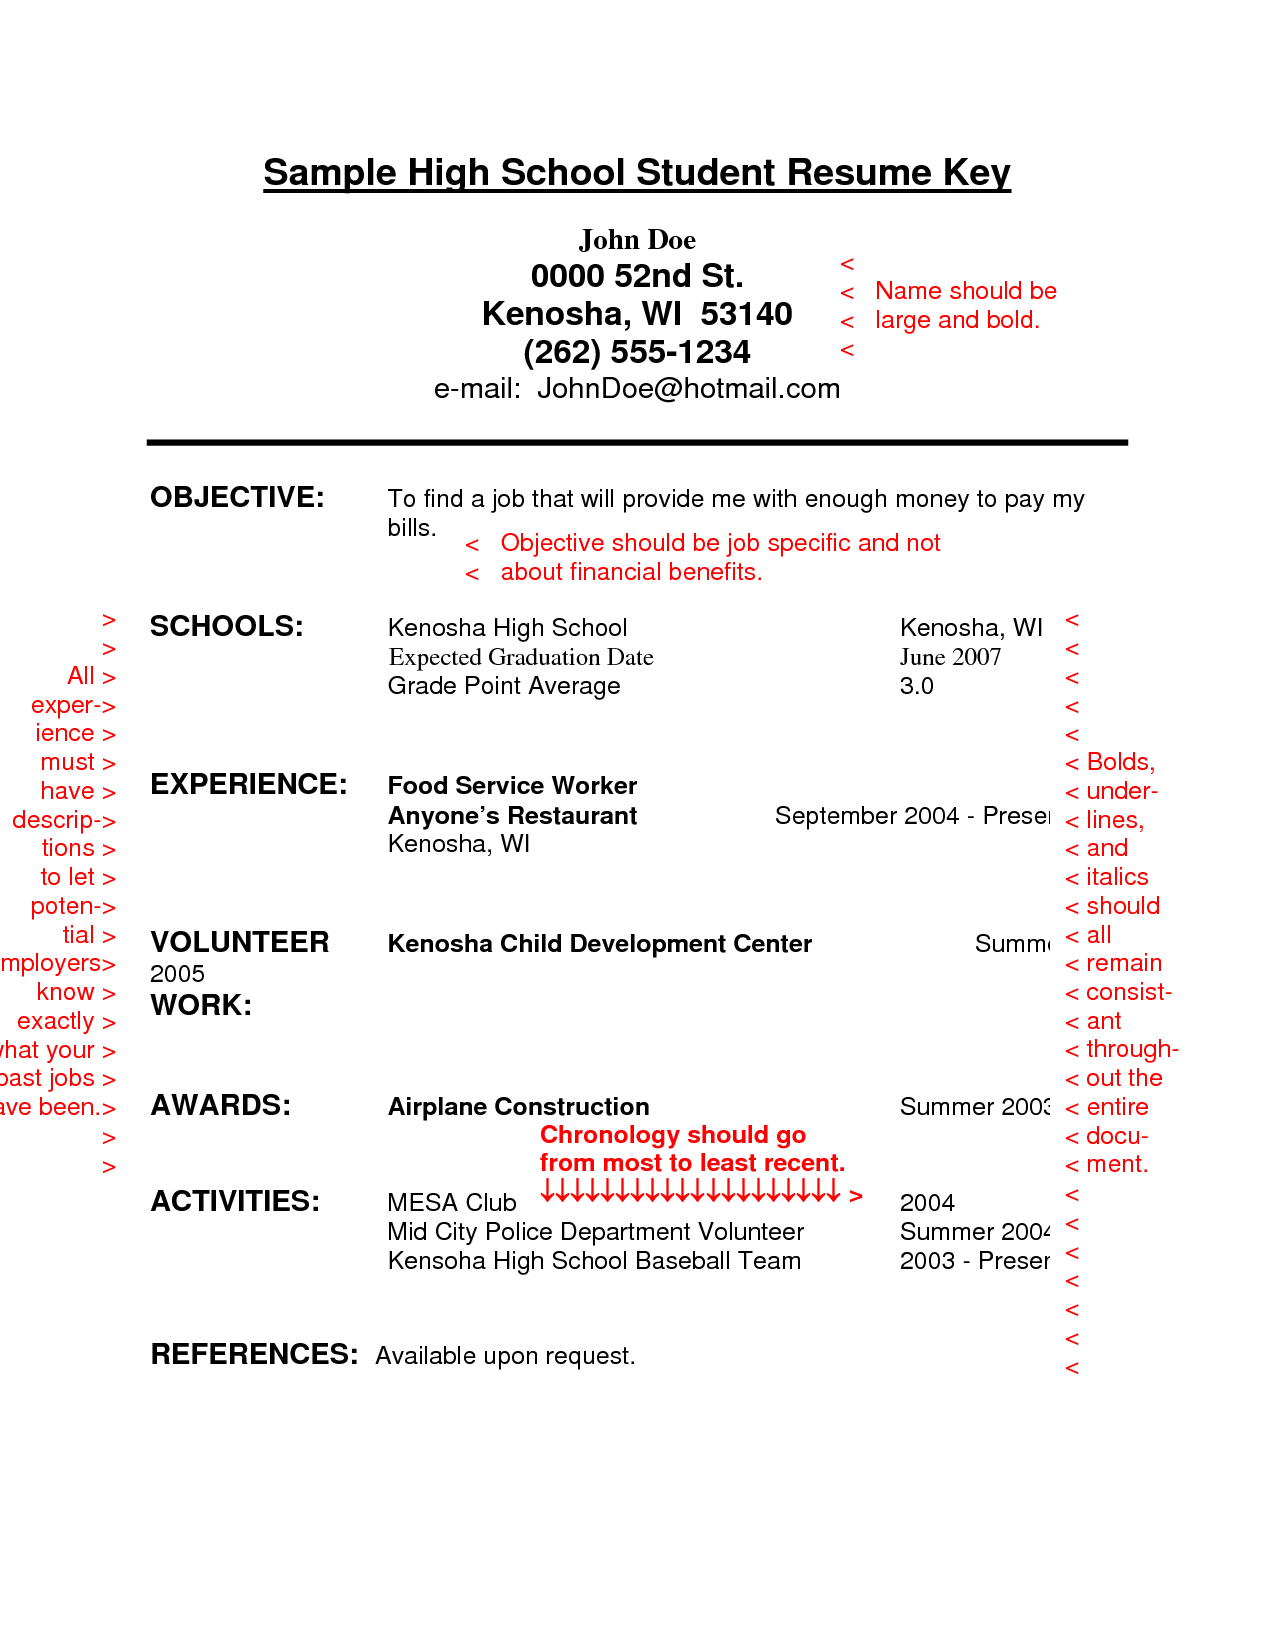 Sample High School Resumes Resume Sample For High School Students With No Experience